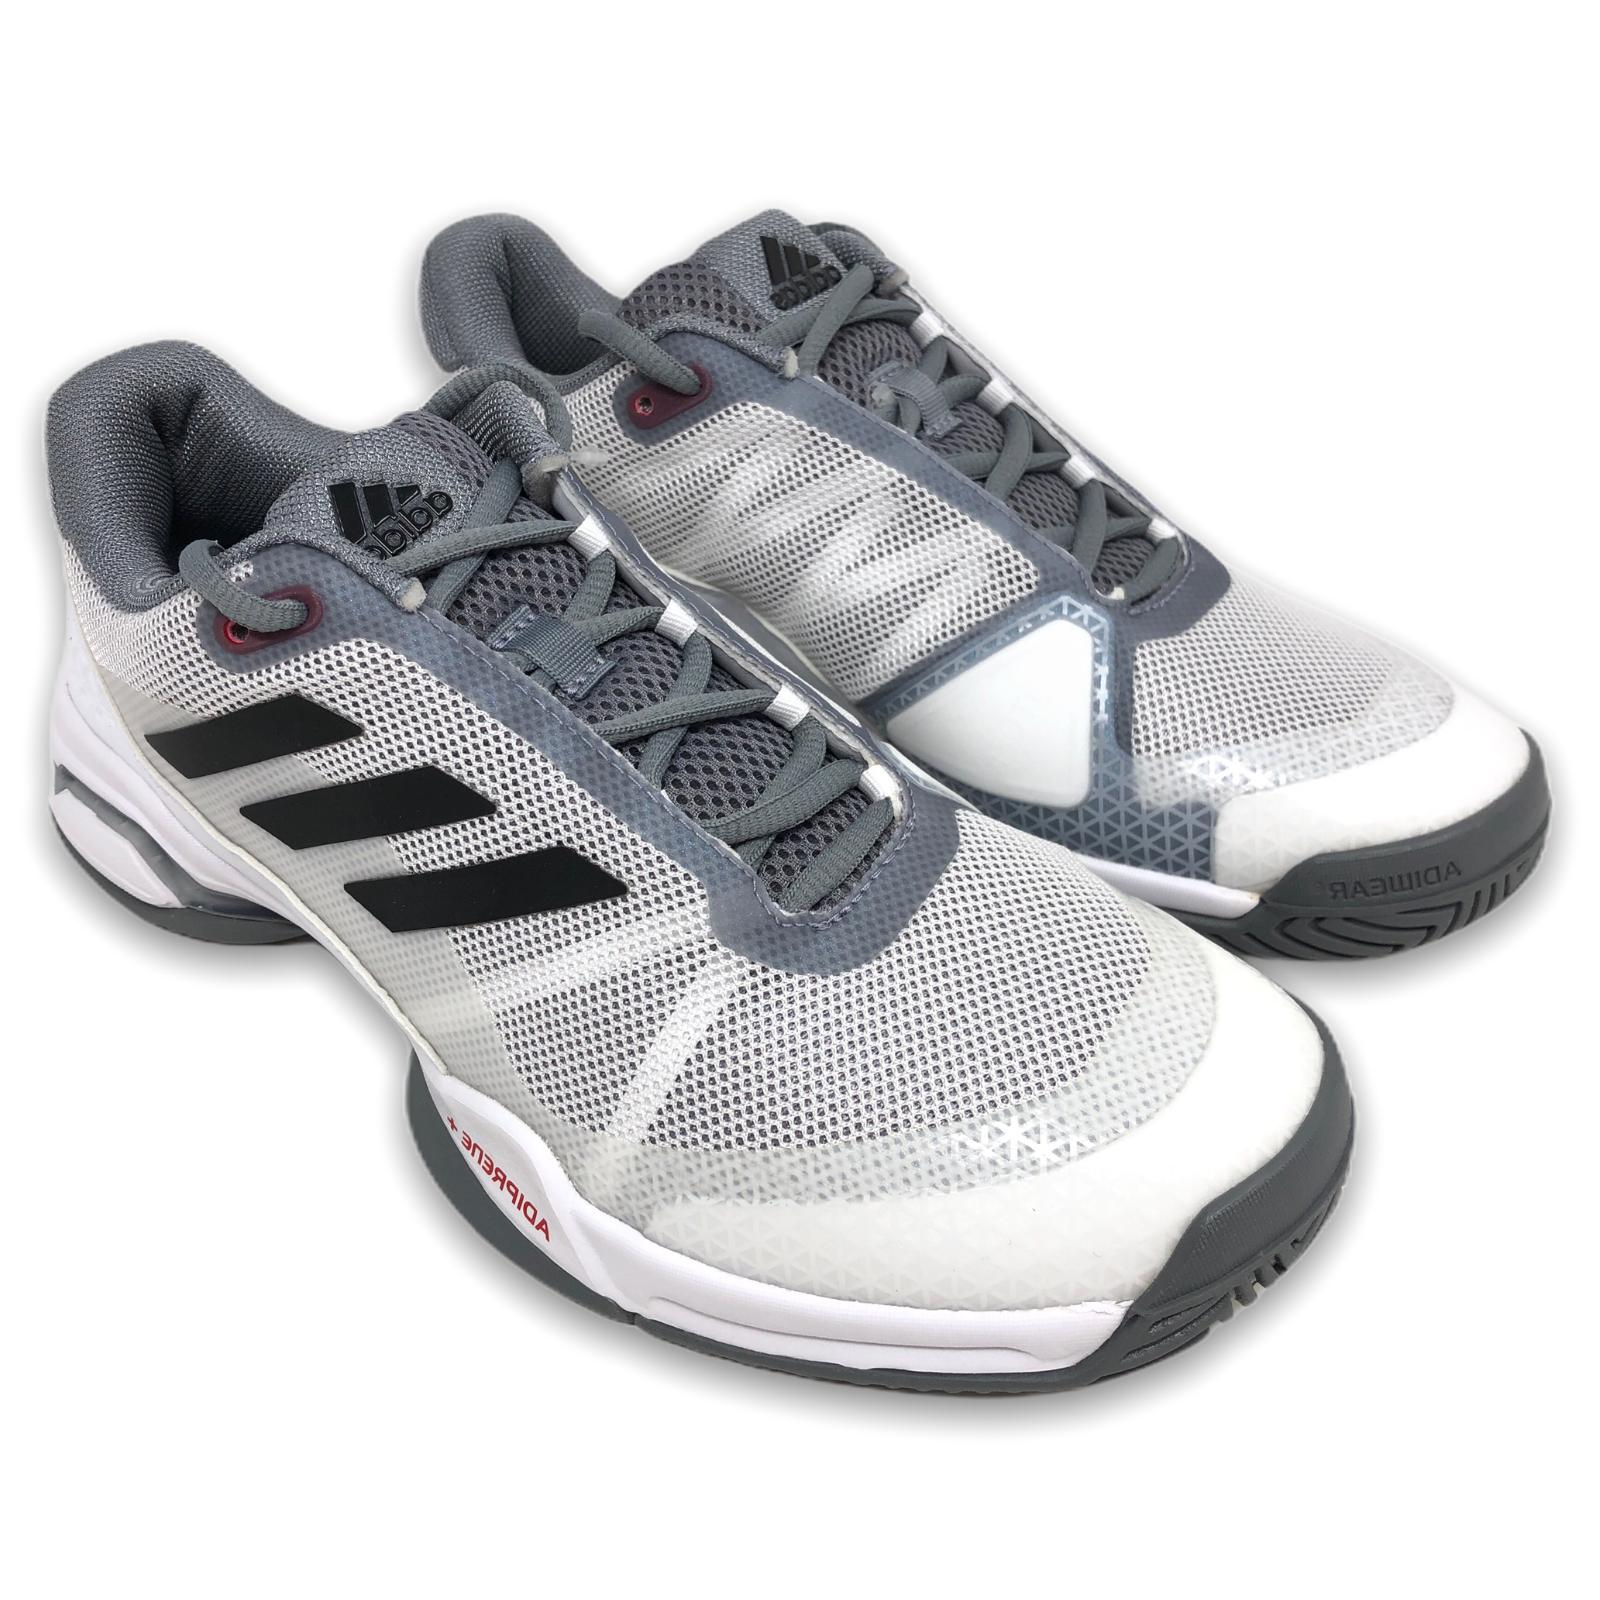 Adidas Tennis Shoes White/Grey-Black Clay Court